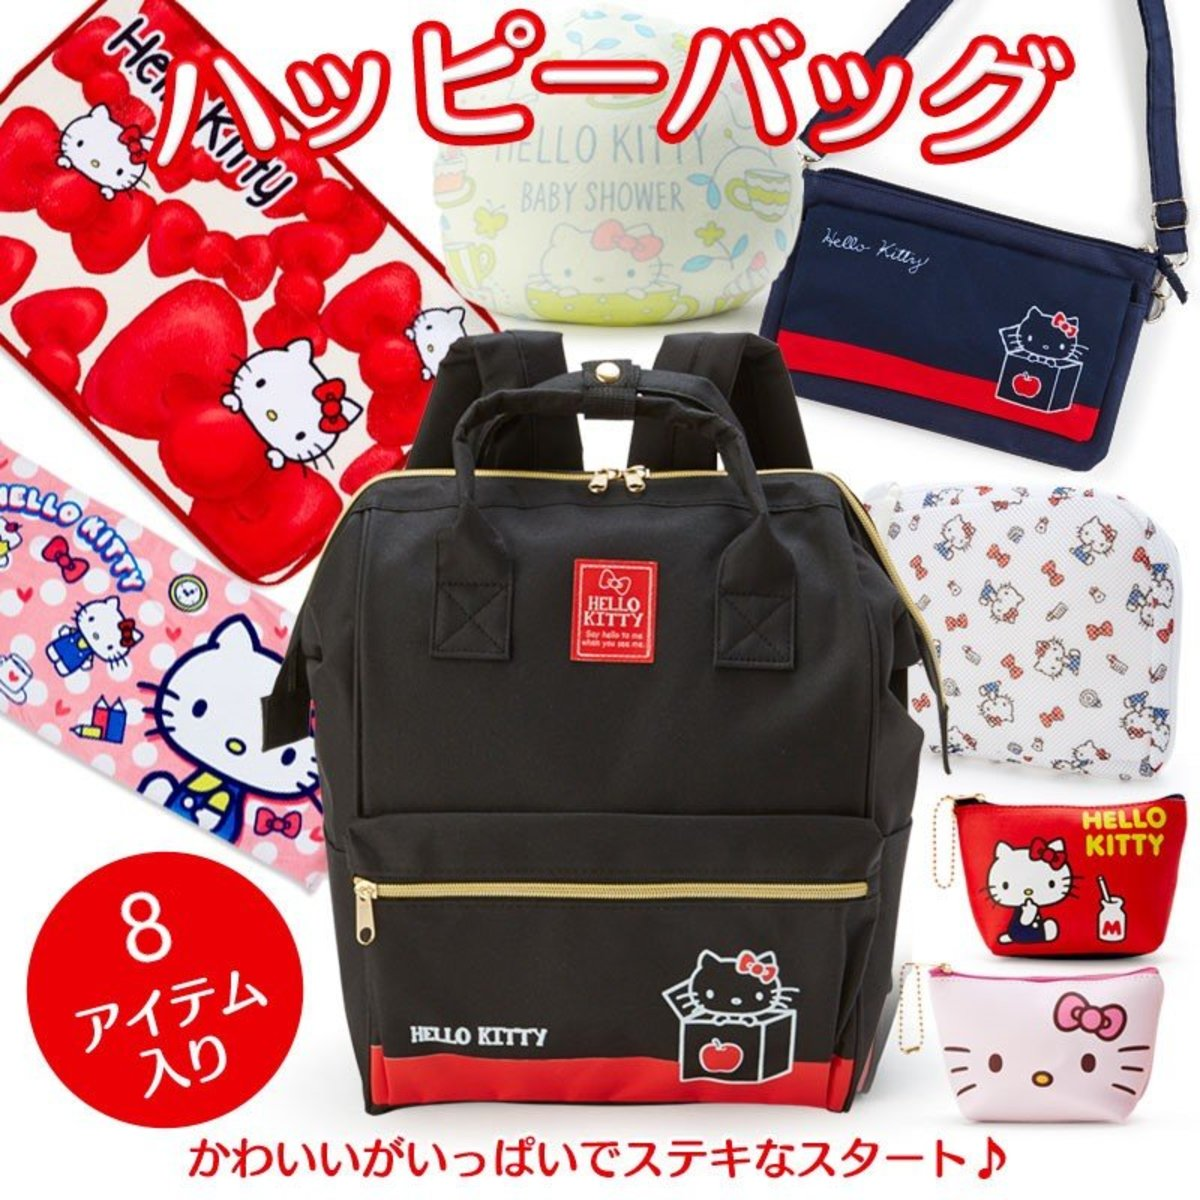 (Hello Kitty/Backpack) Japan ❤️Sanrio 2021 Lucky Bag (8 Items)